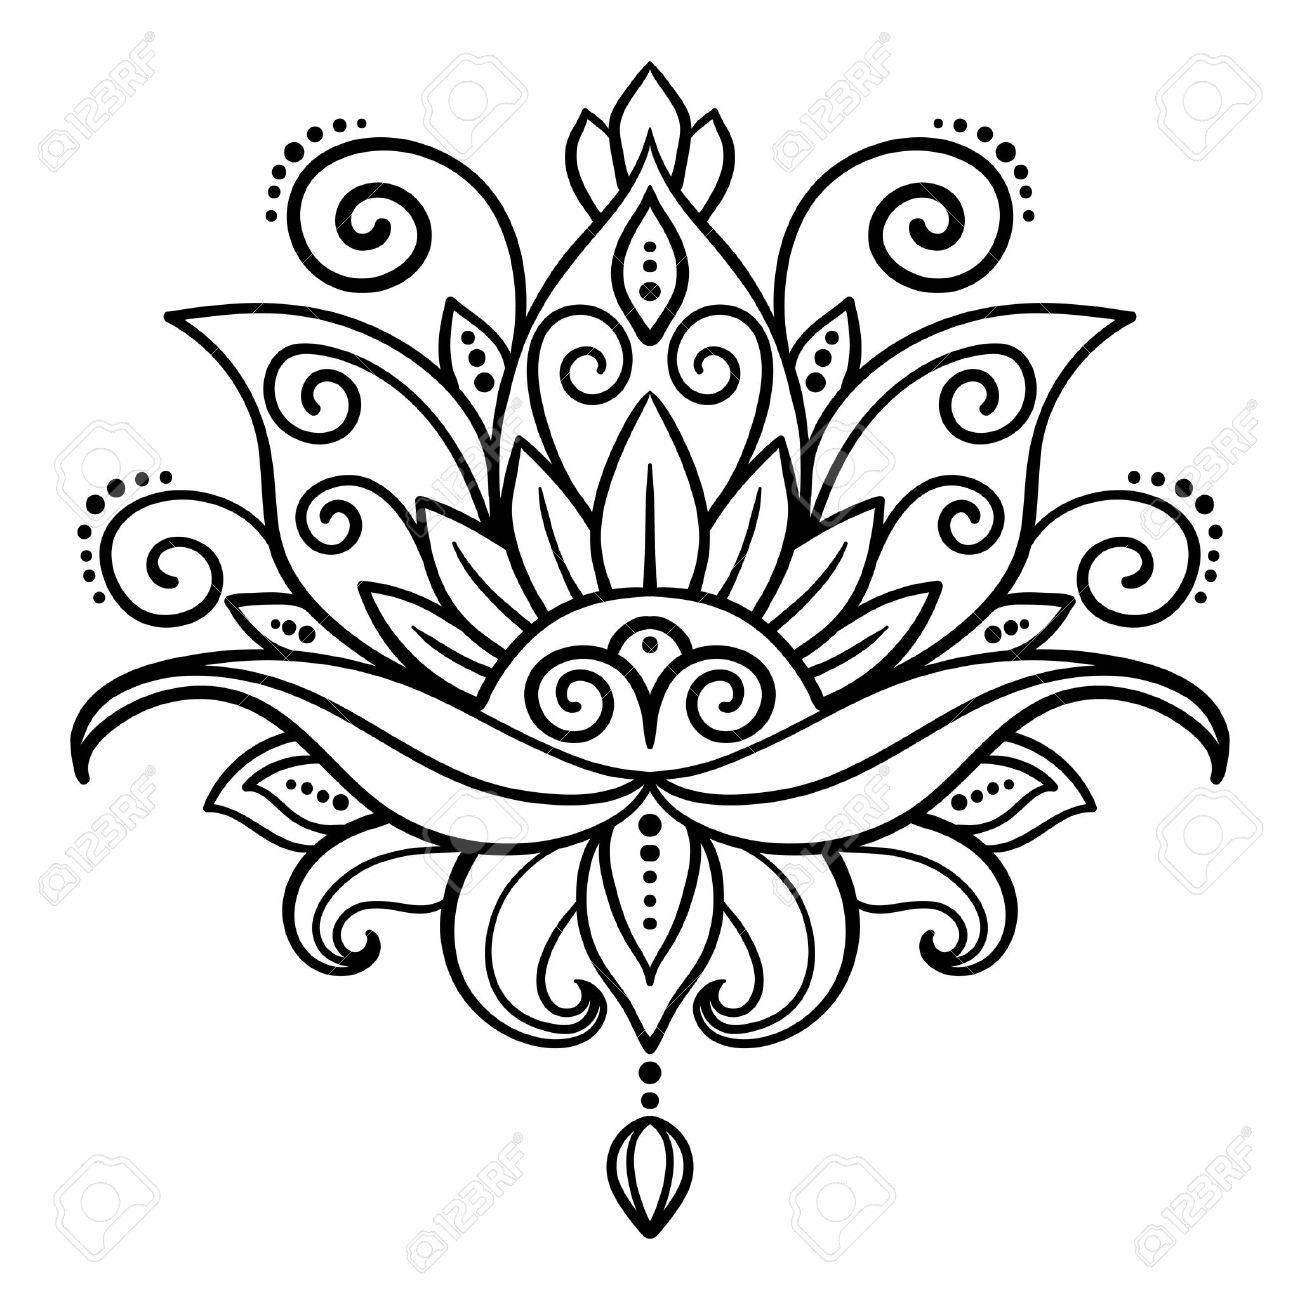 52325e1d9 1300x1300 Vector, Abstract, Oriental Style, Flower, Lotus, Tattoo, Design